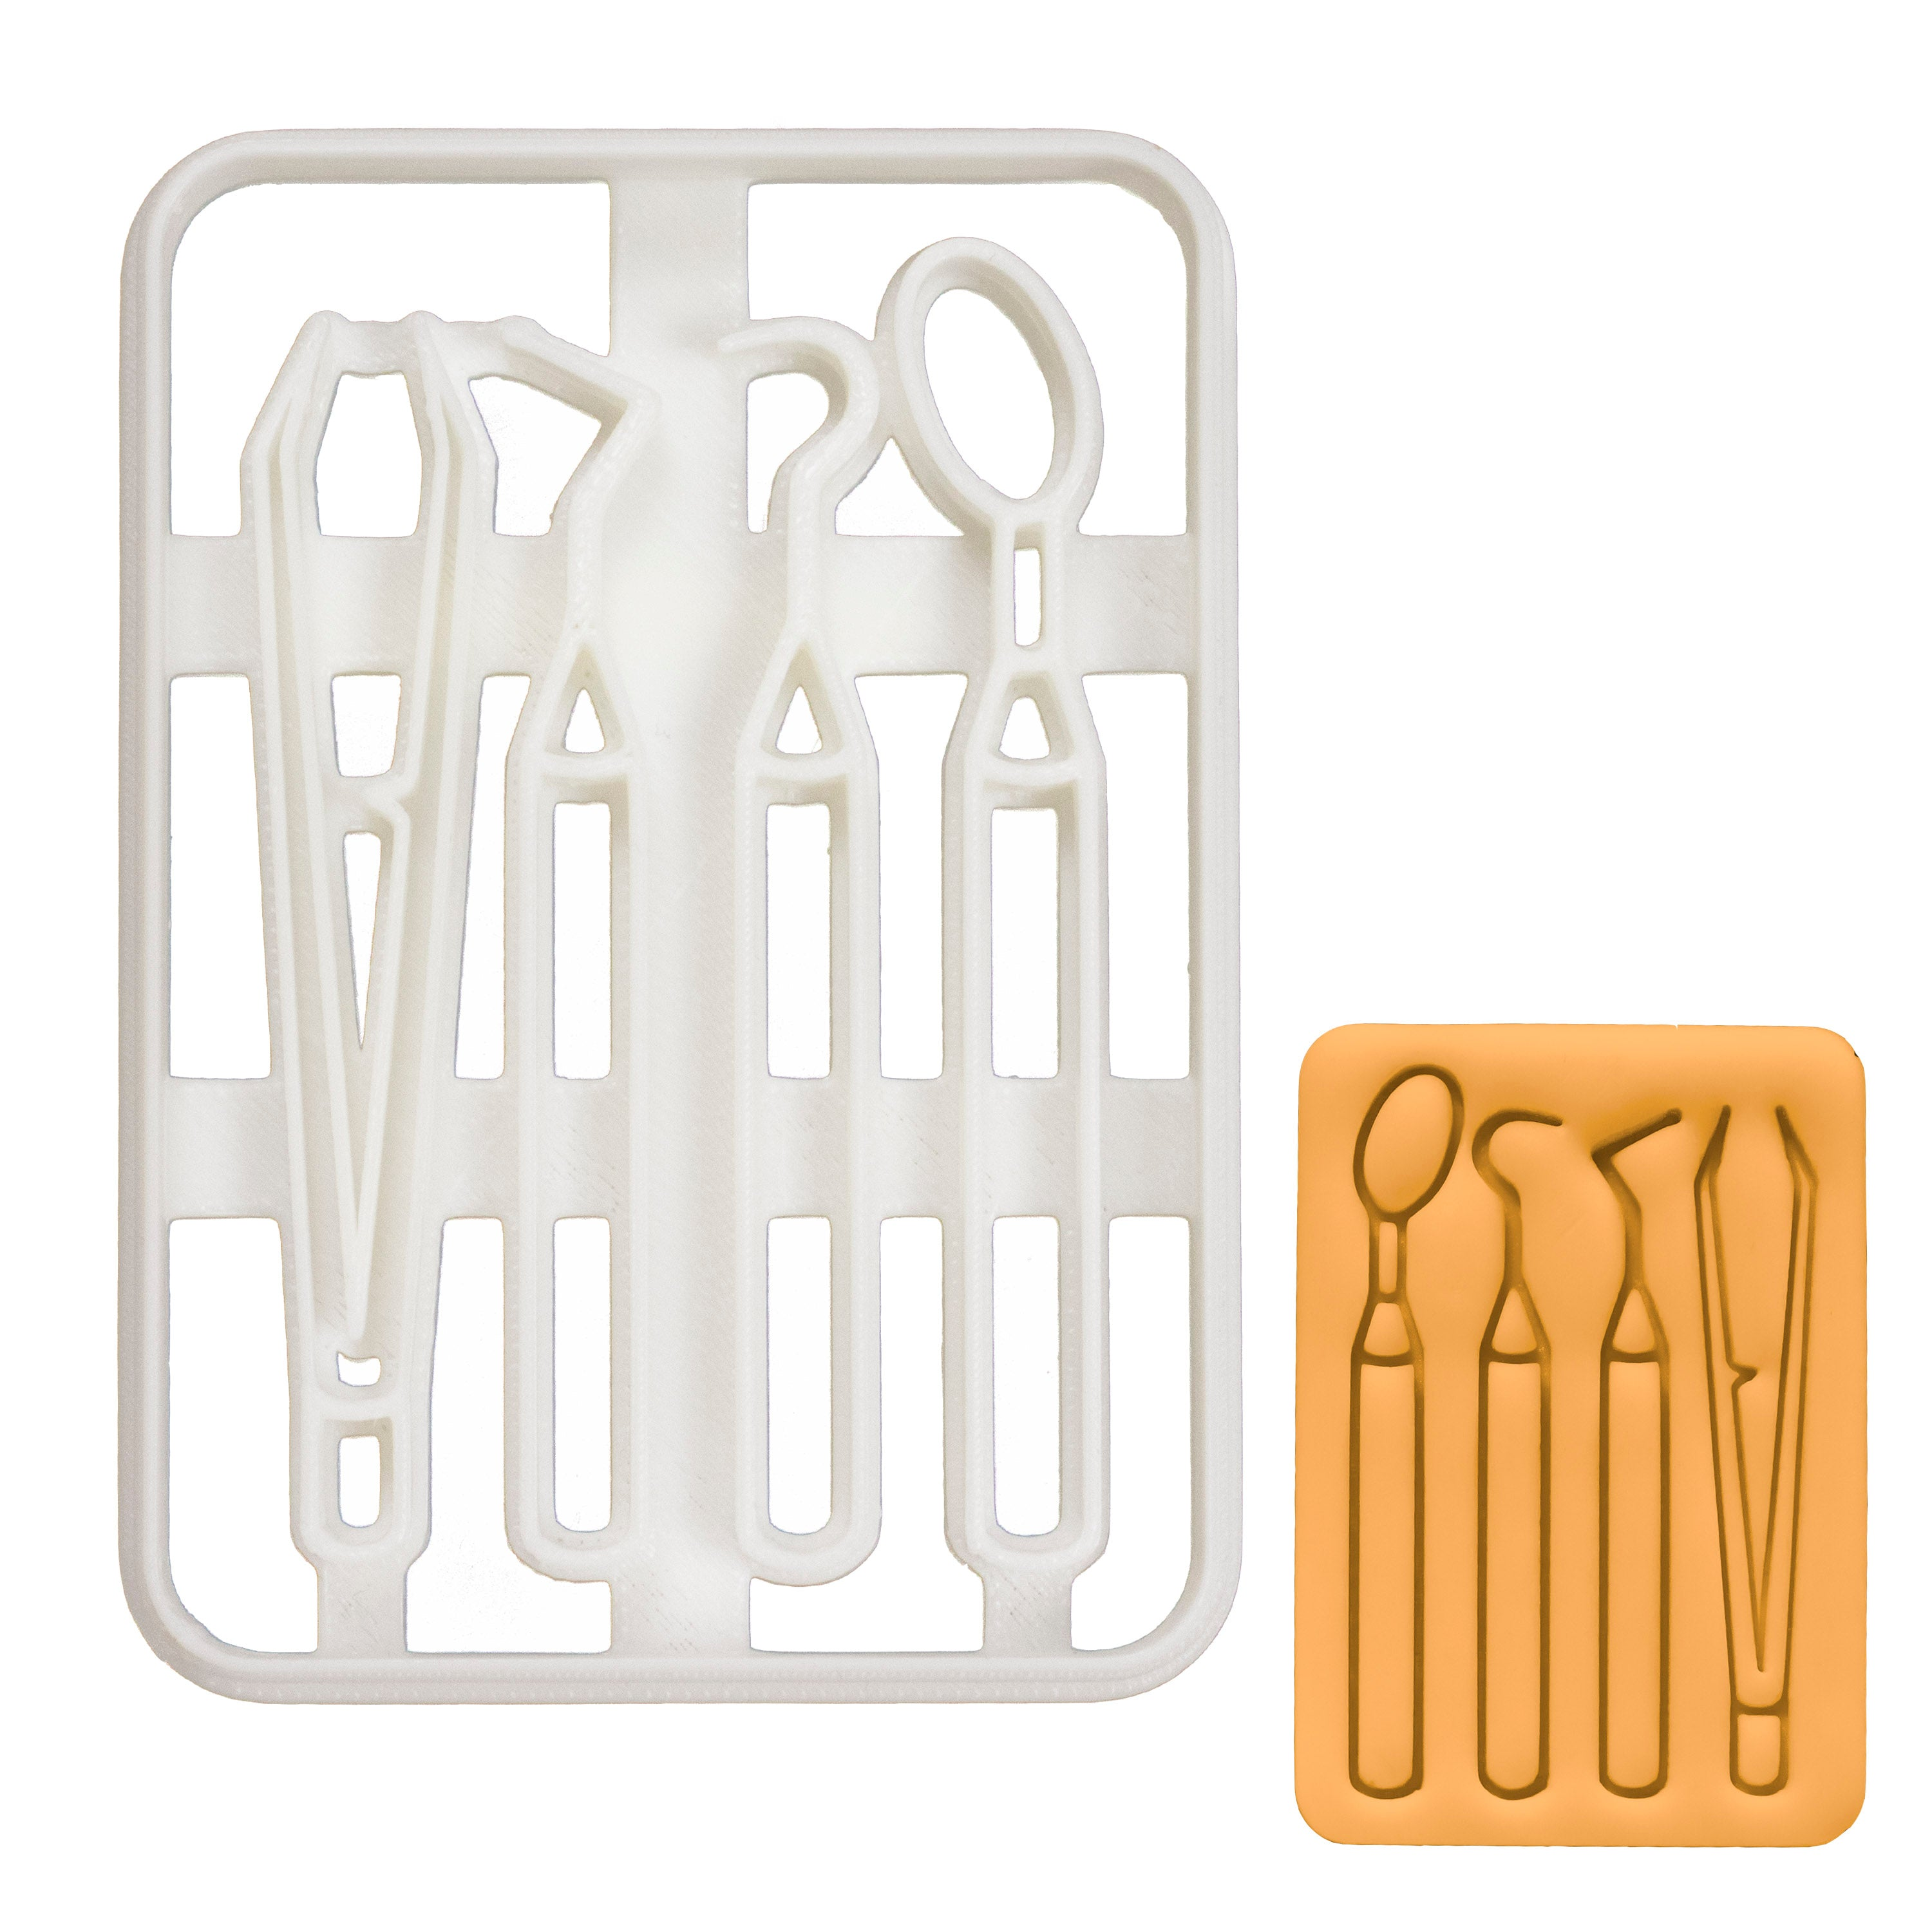 Dentist Examination Tools cookie cutter